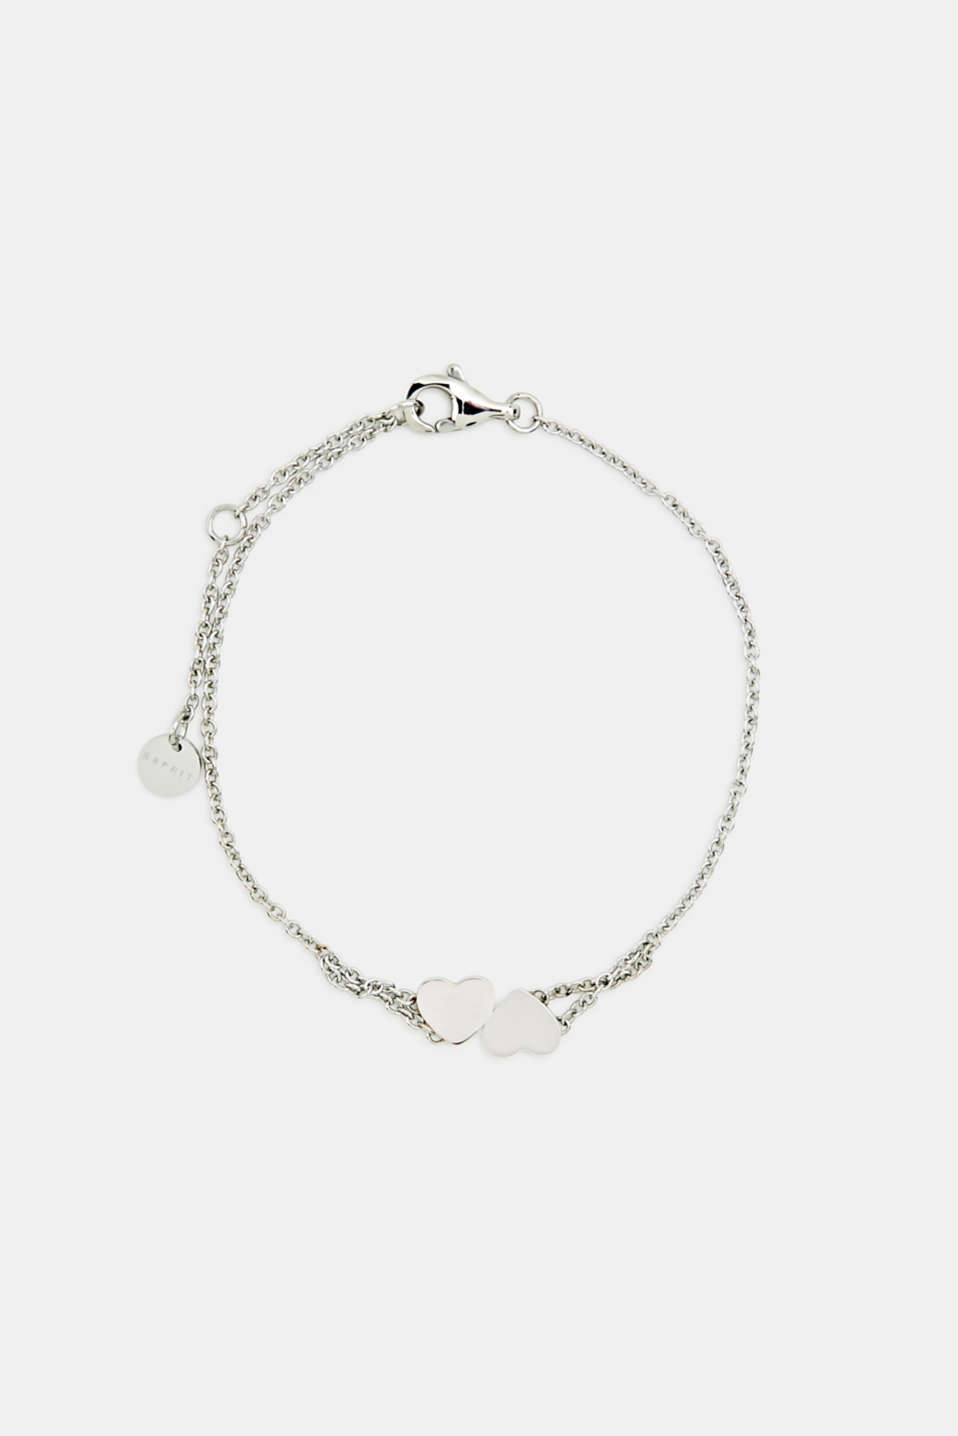 Bracelet with heart charm, stainless steel, LCROSEGOLD BICOL, detail image number 0